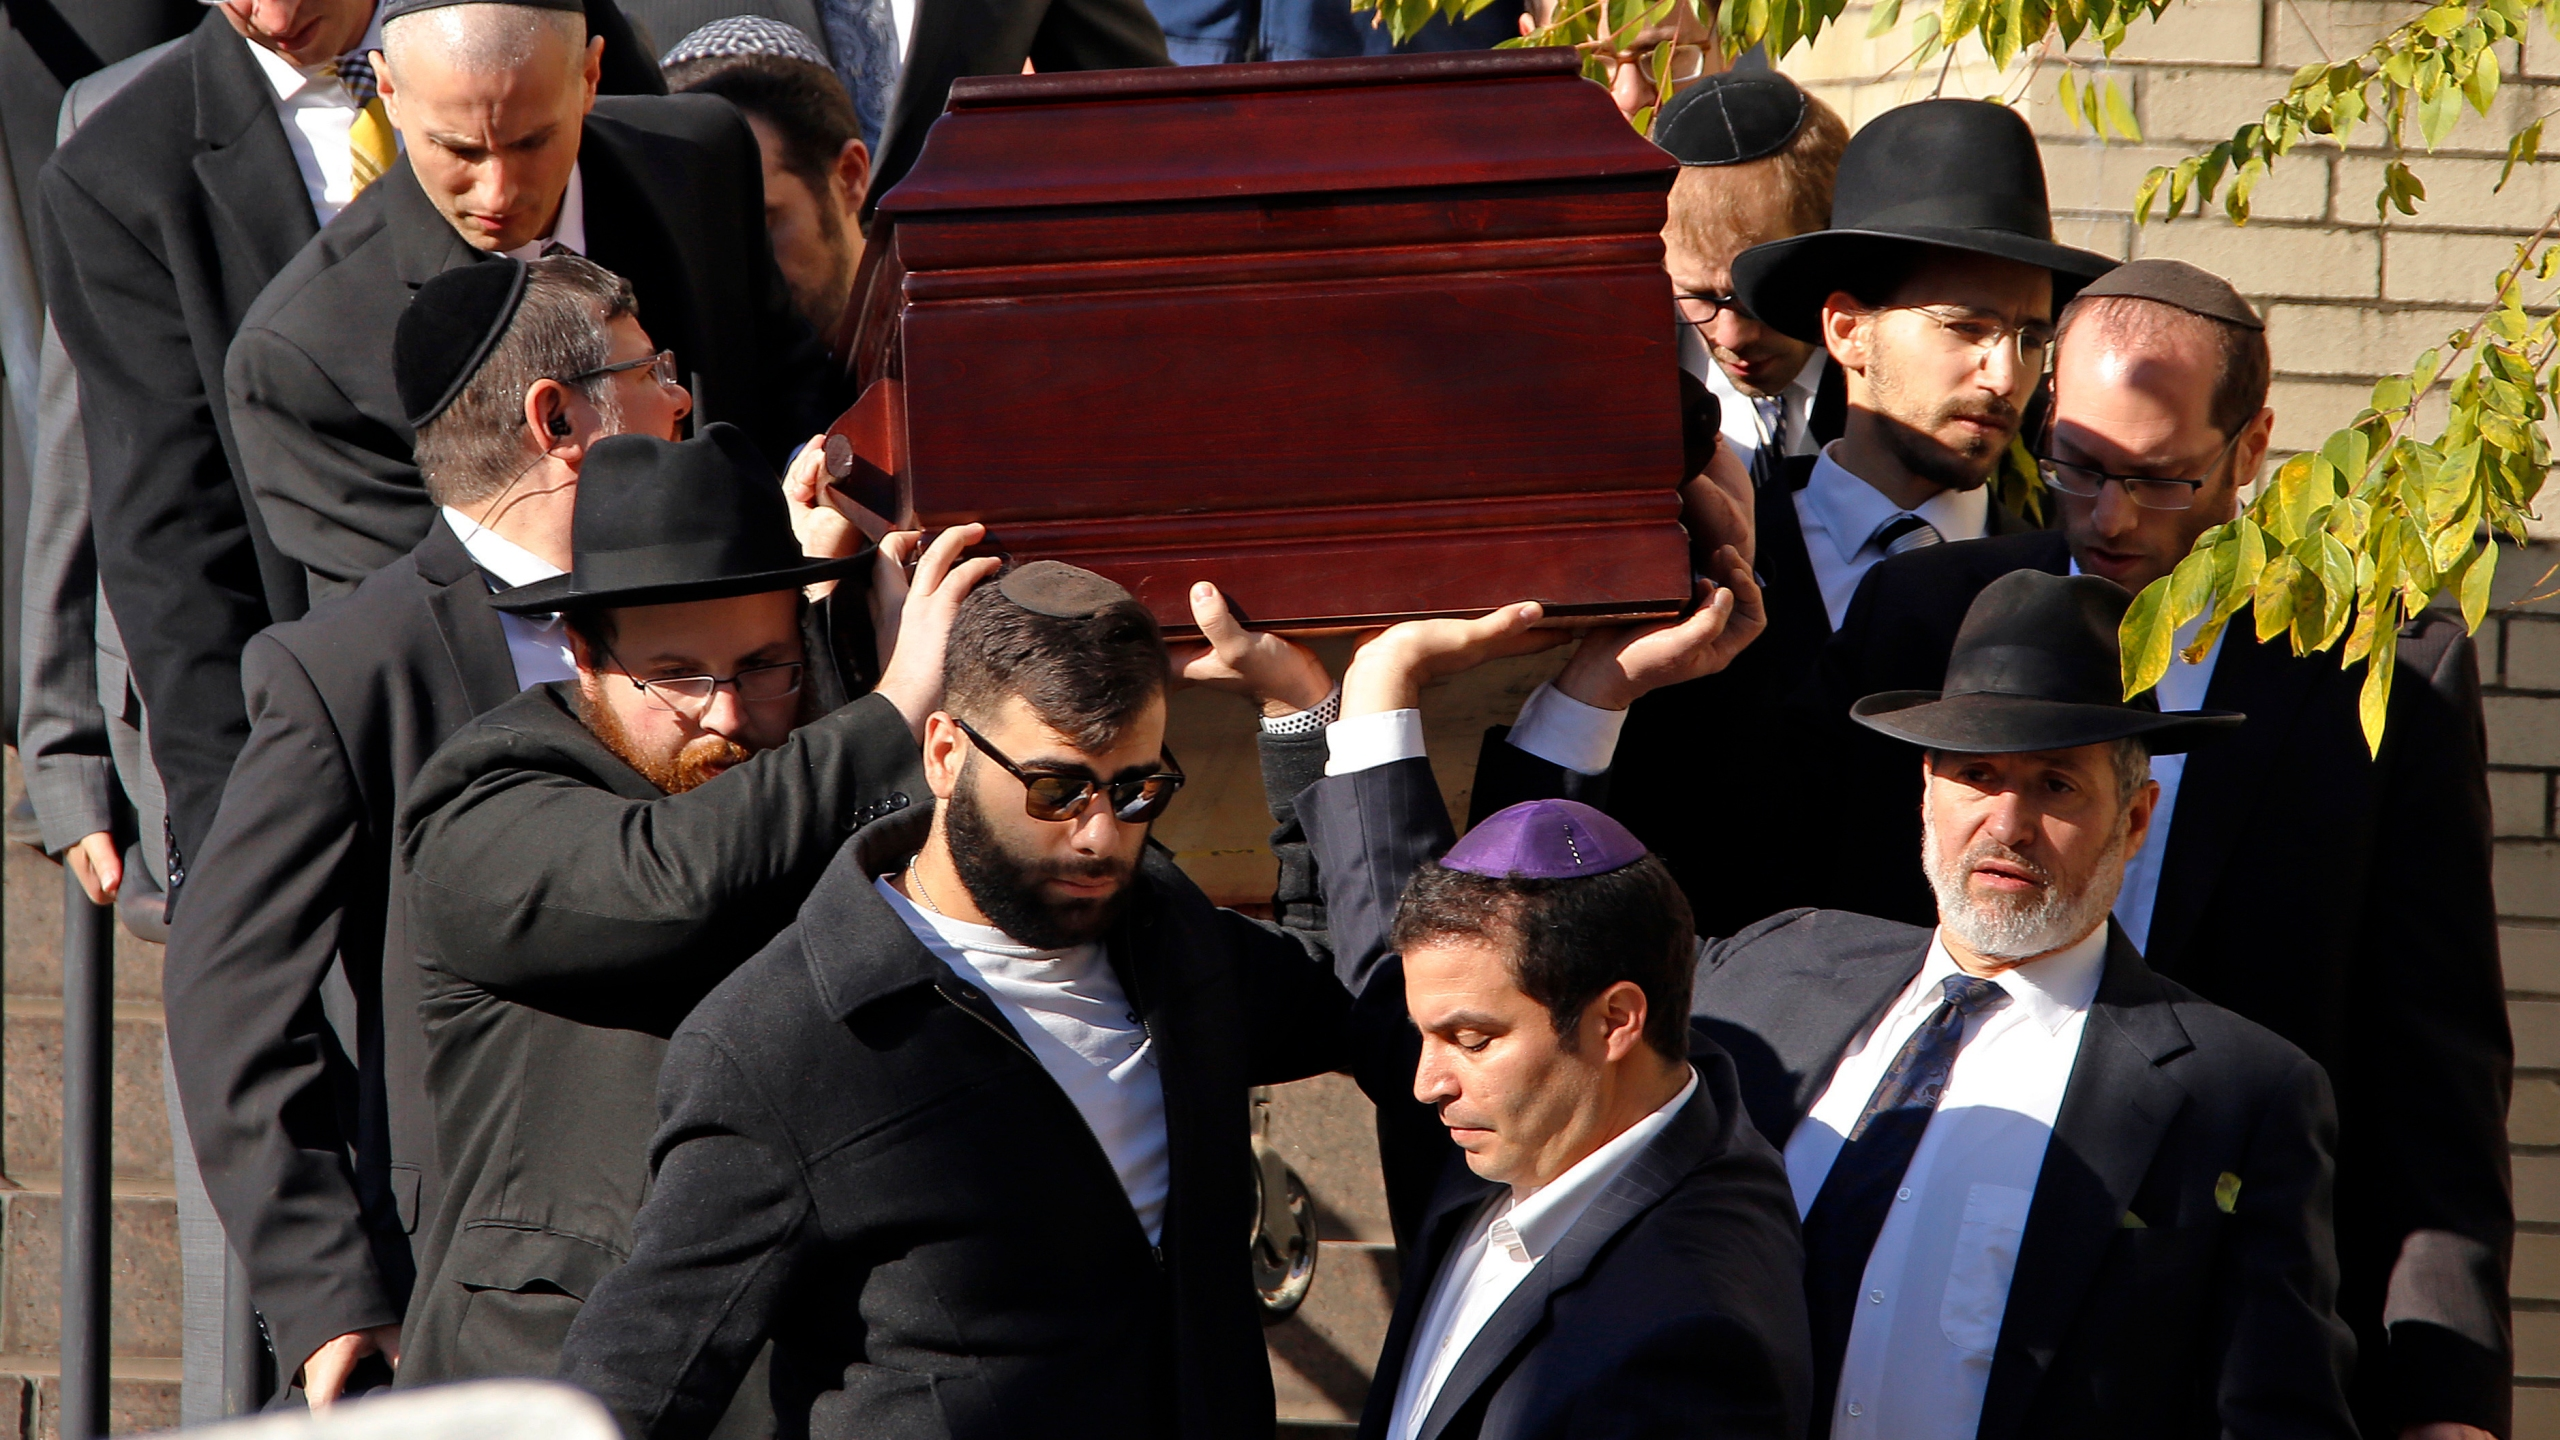 Shooting_Synagogue_Funerals_87748-159532.jpg93428885